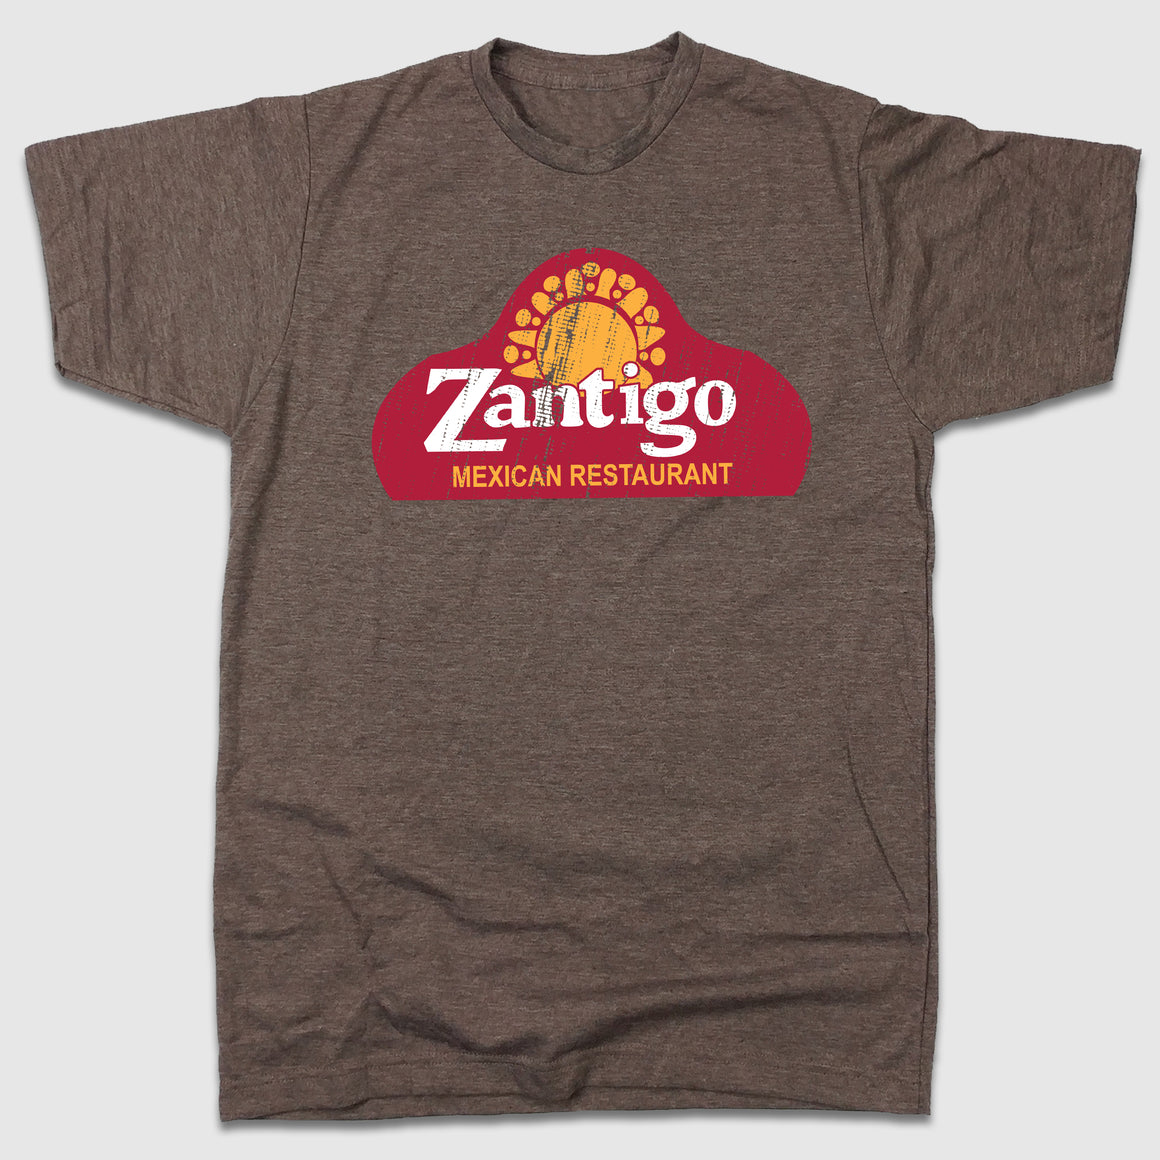 Zantigo Mexican Restaurant - Cincy Shirts